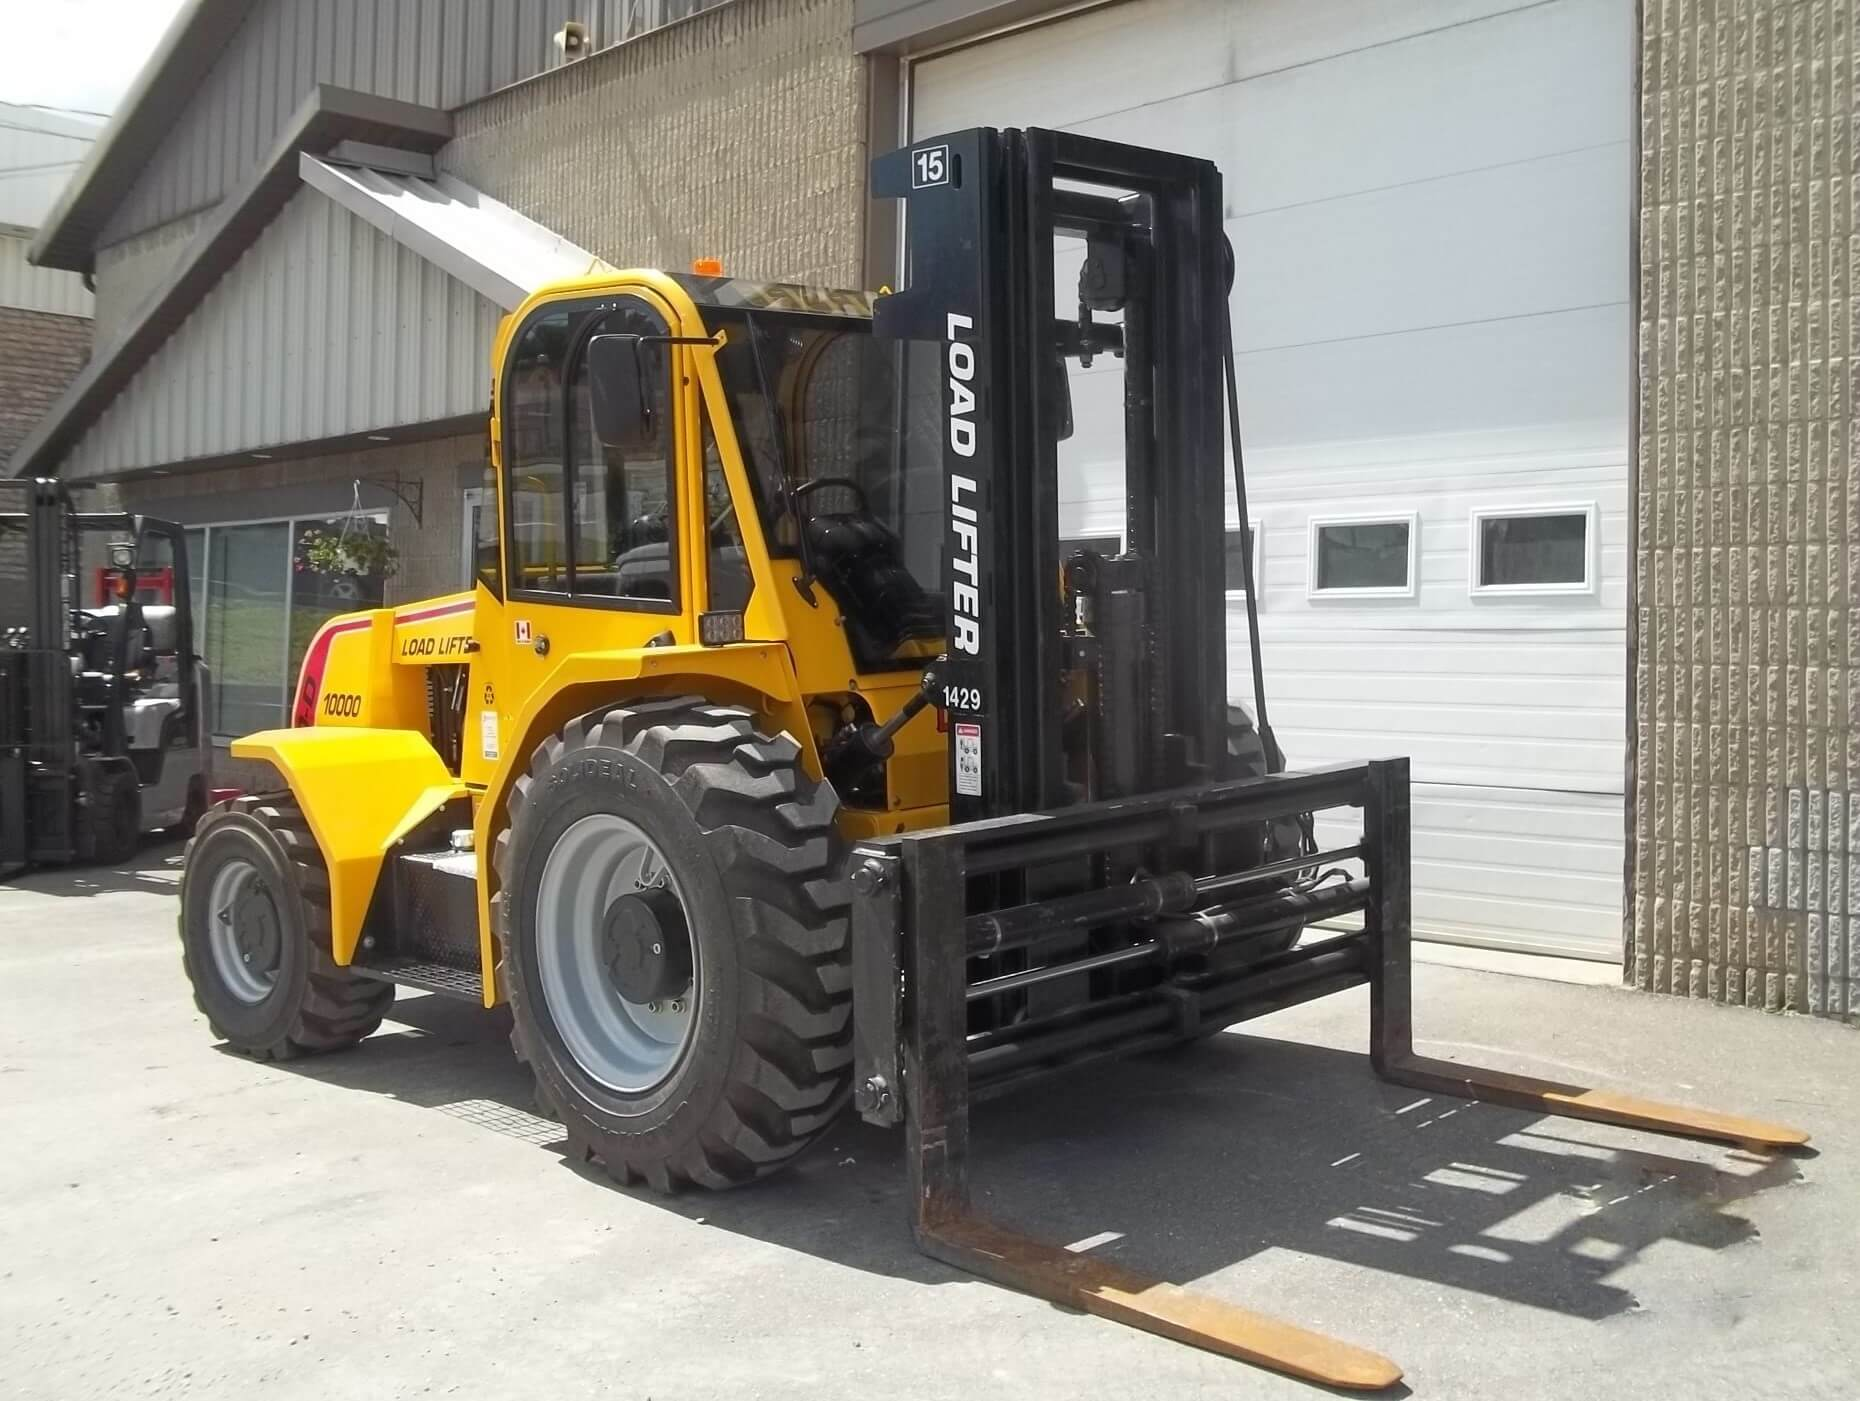 Load Lifter 2400 series forklift